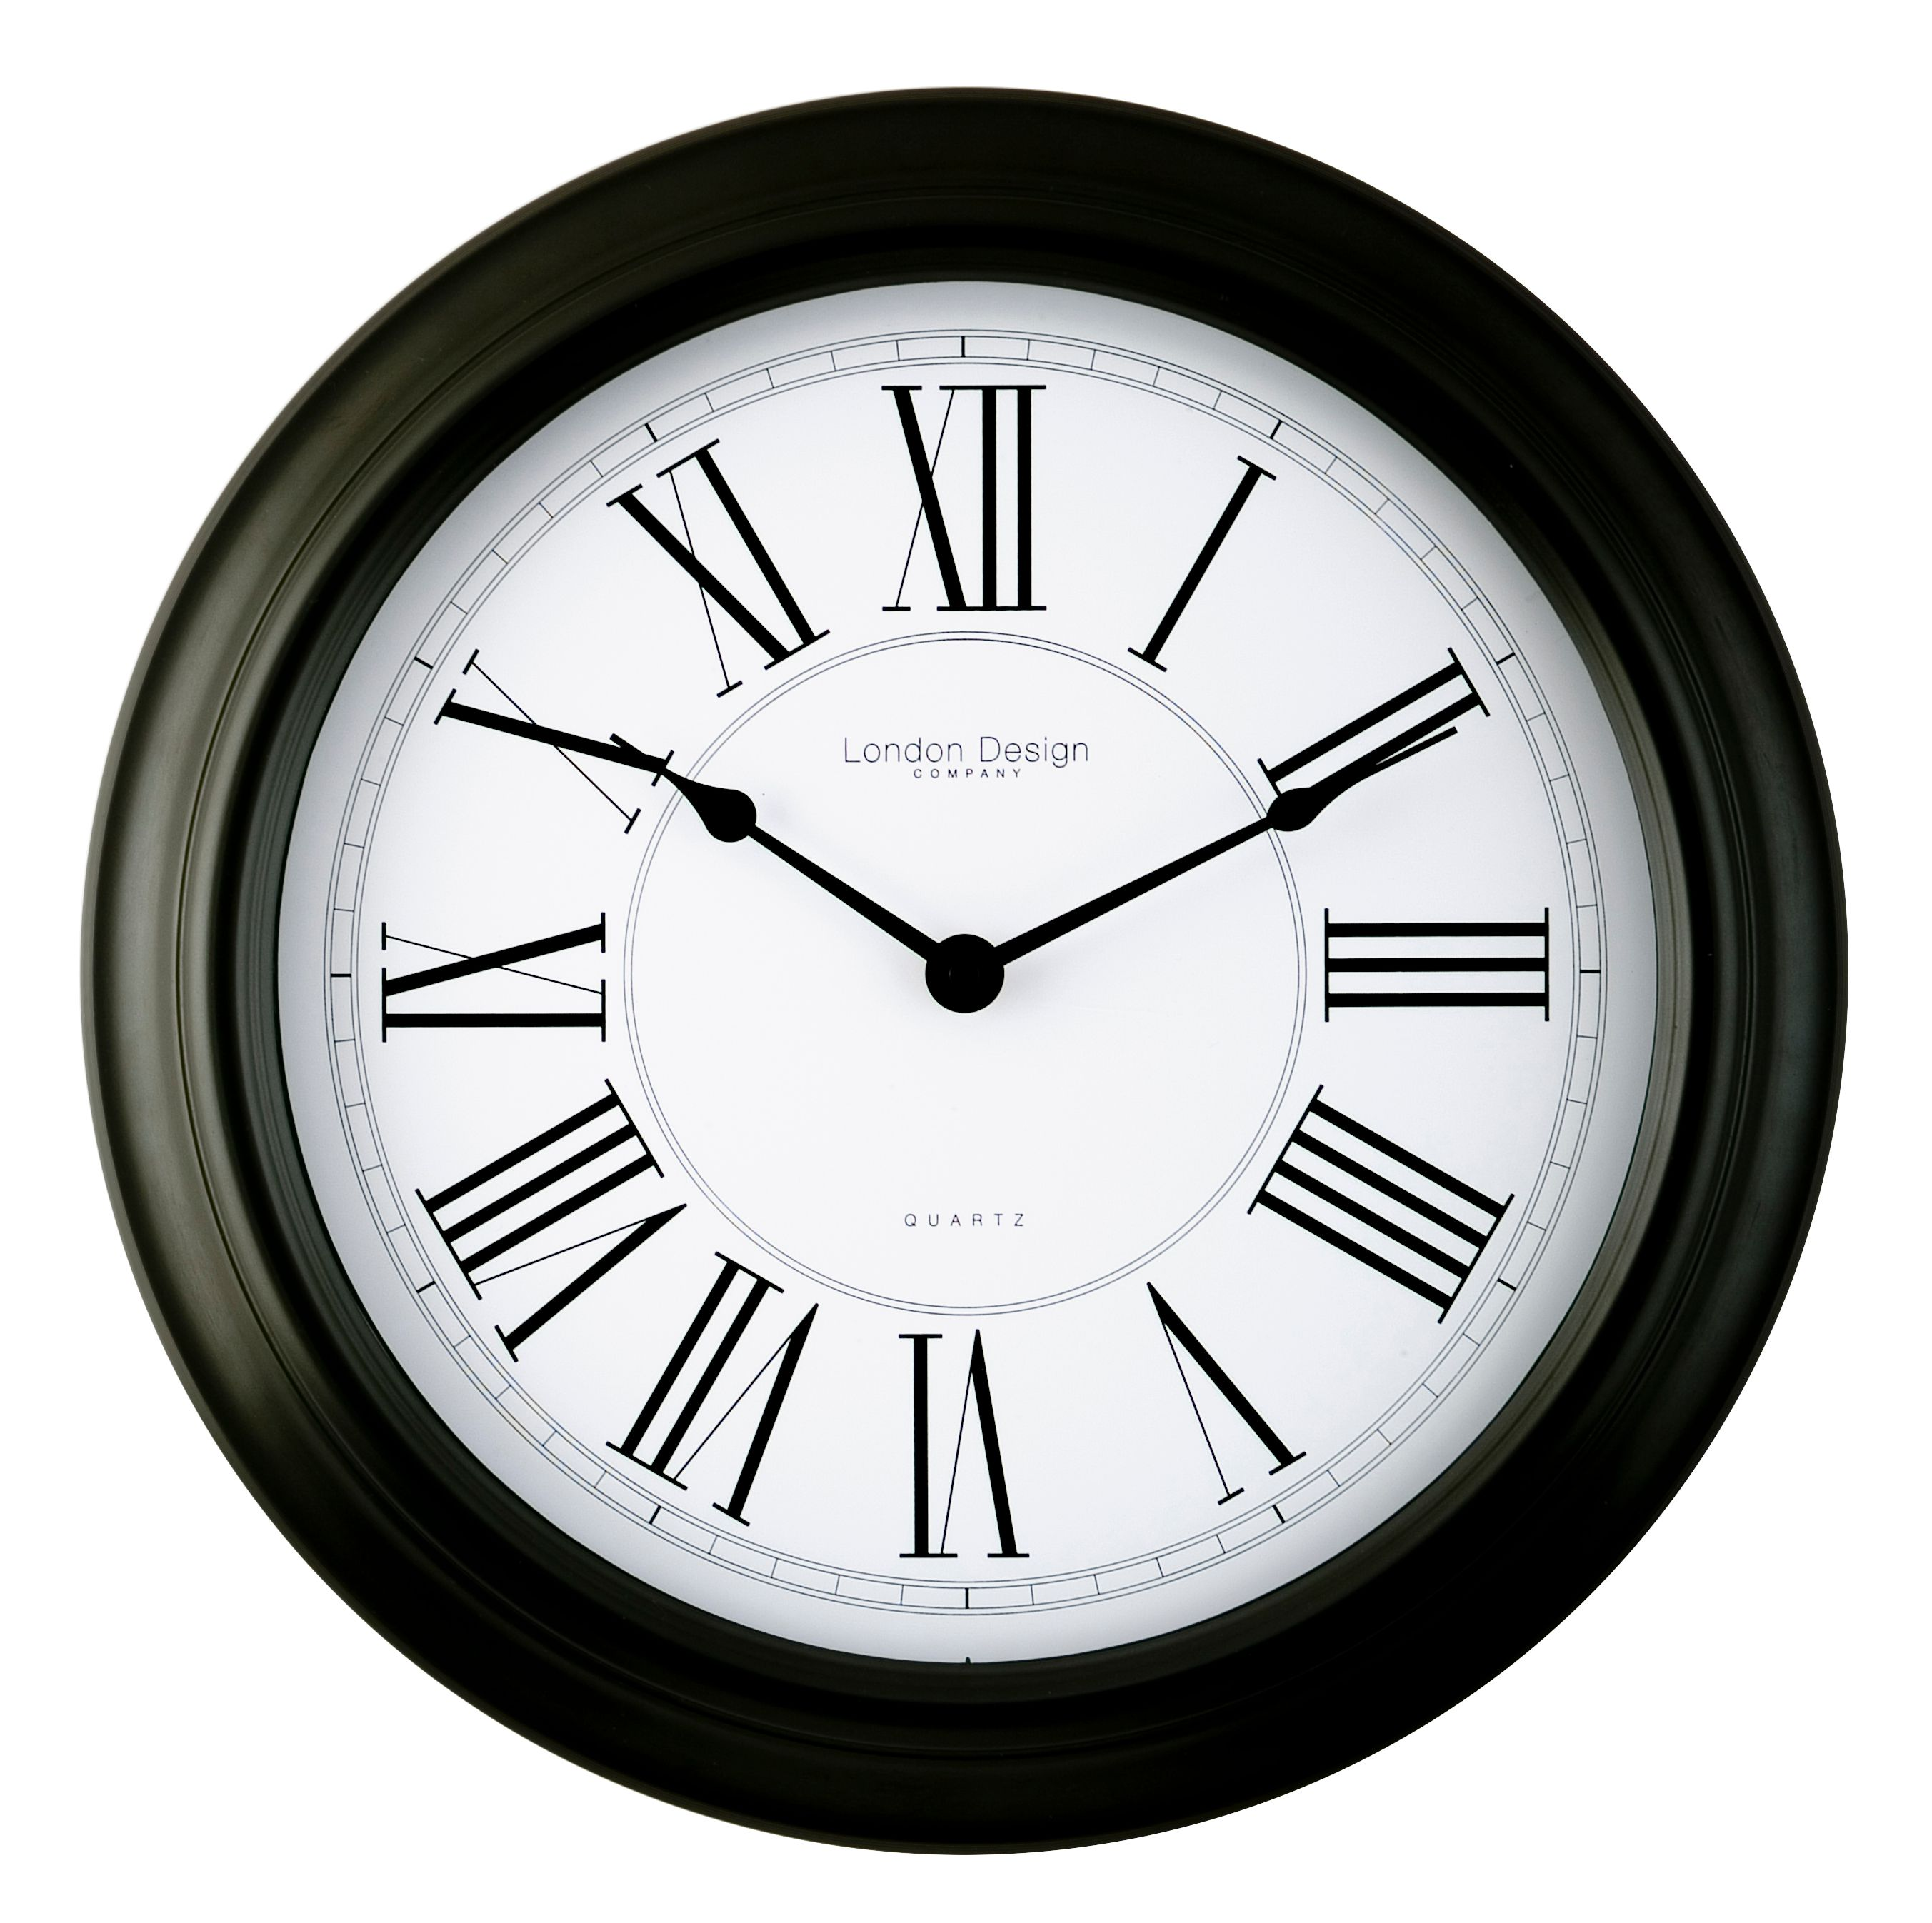 London Clock Round Quartz wall clock